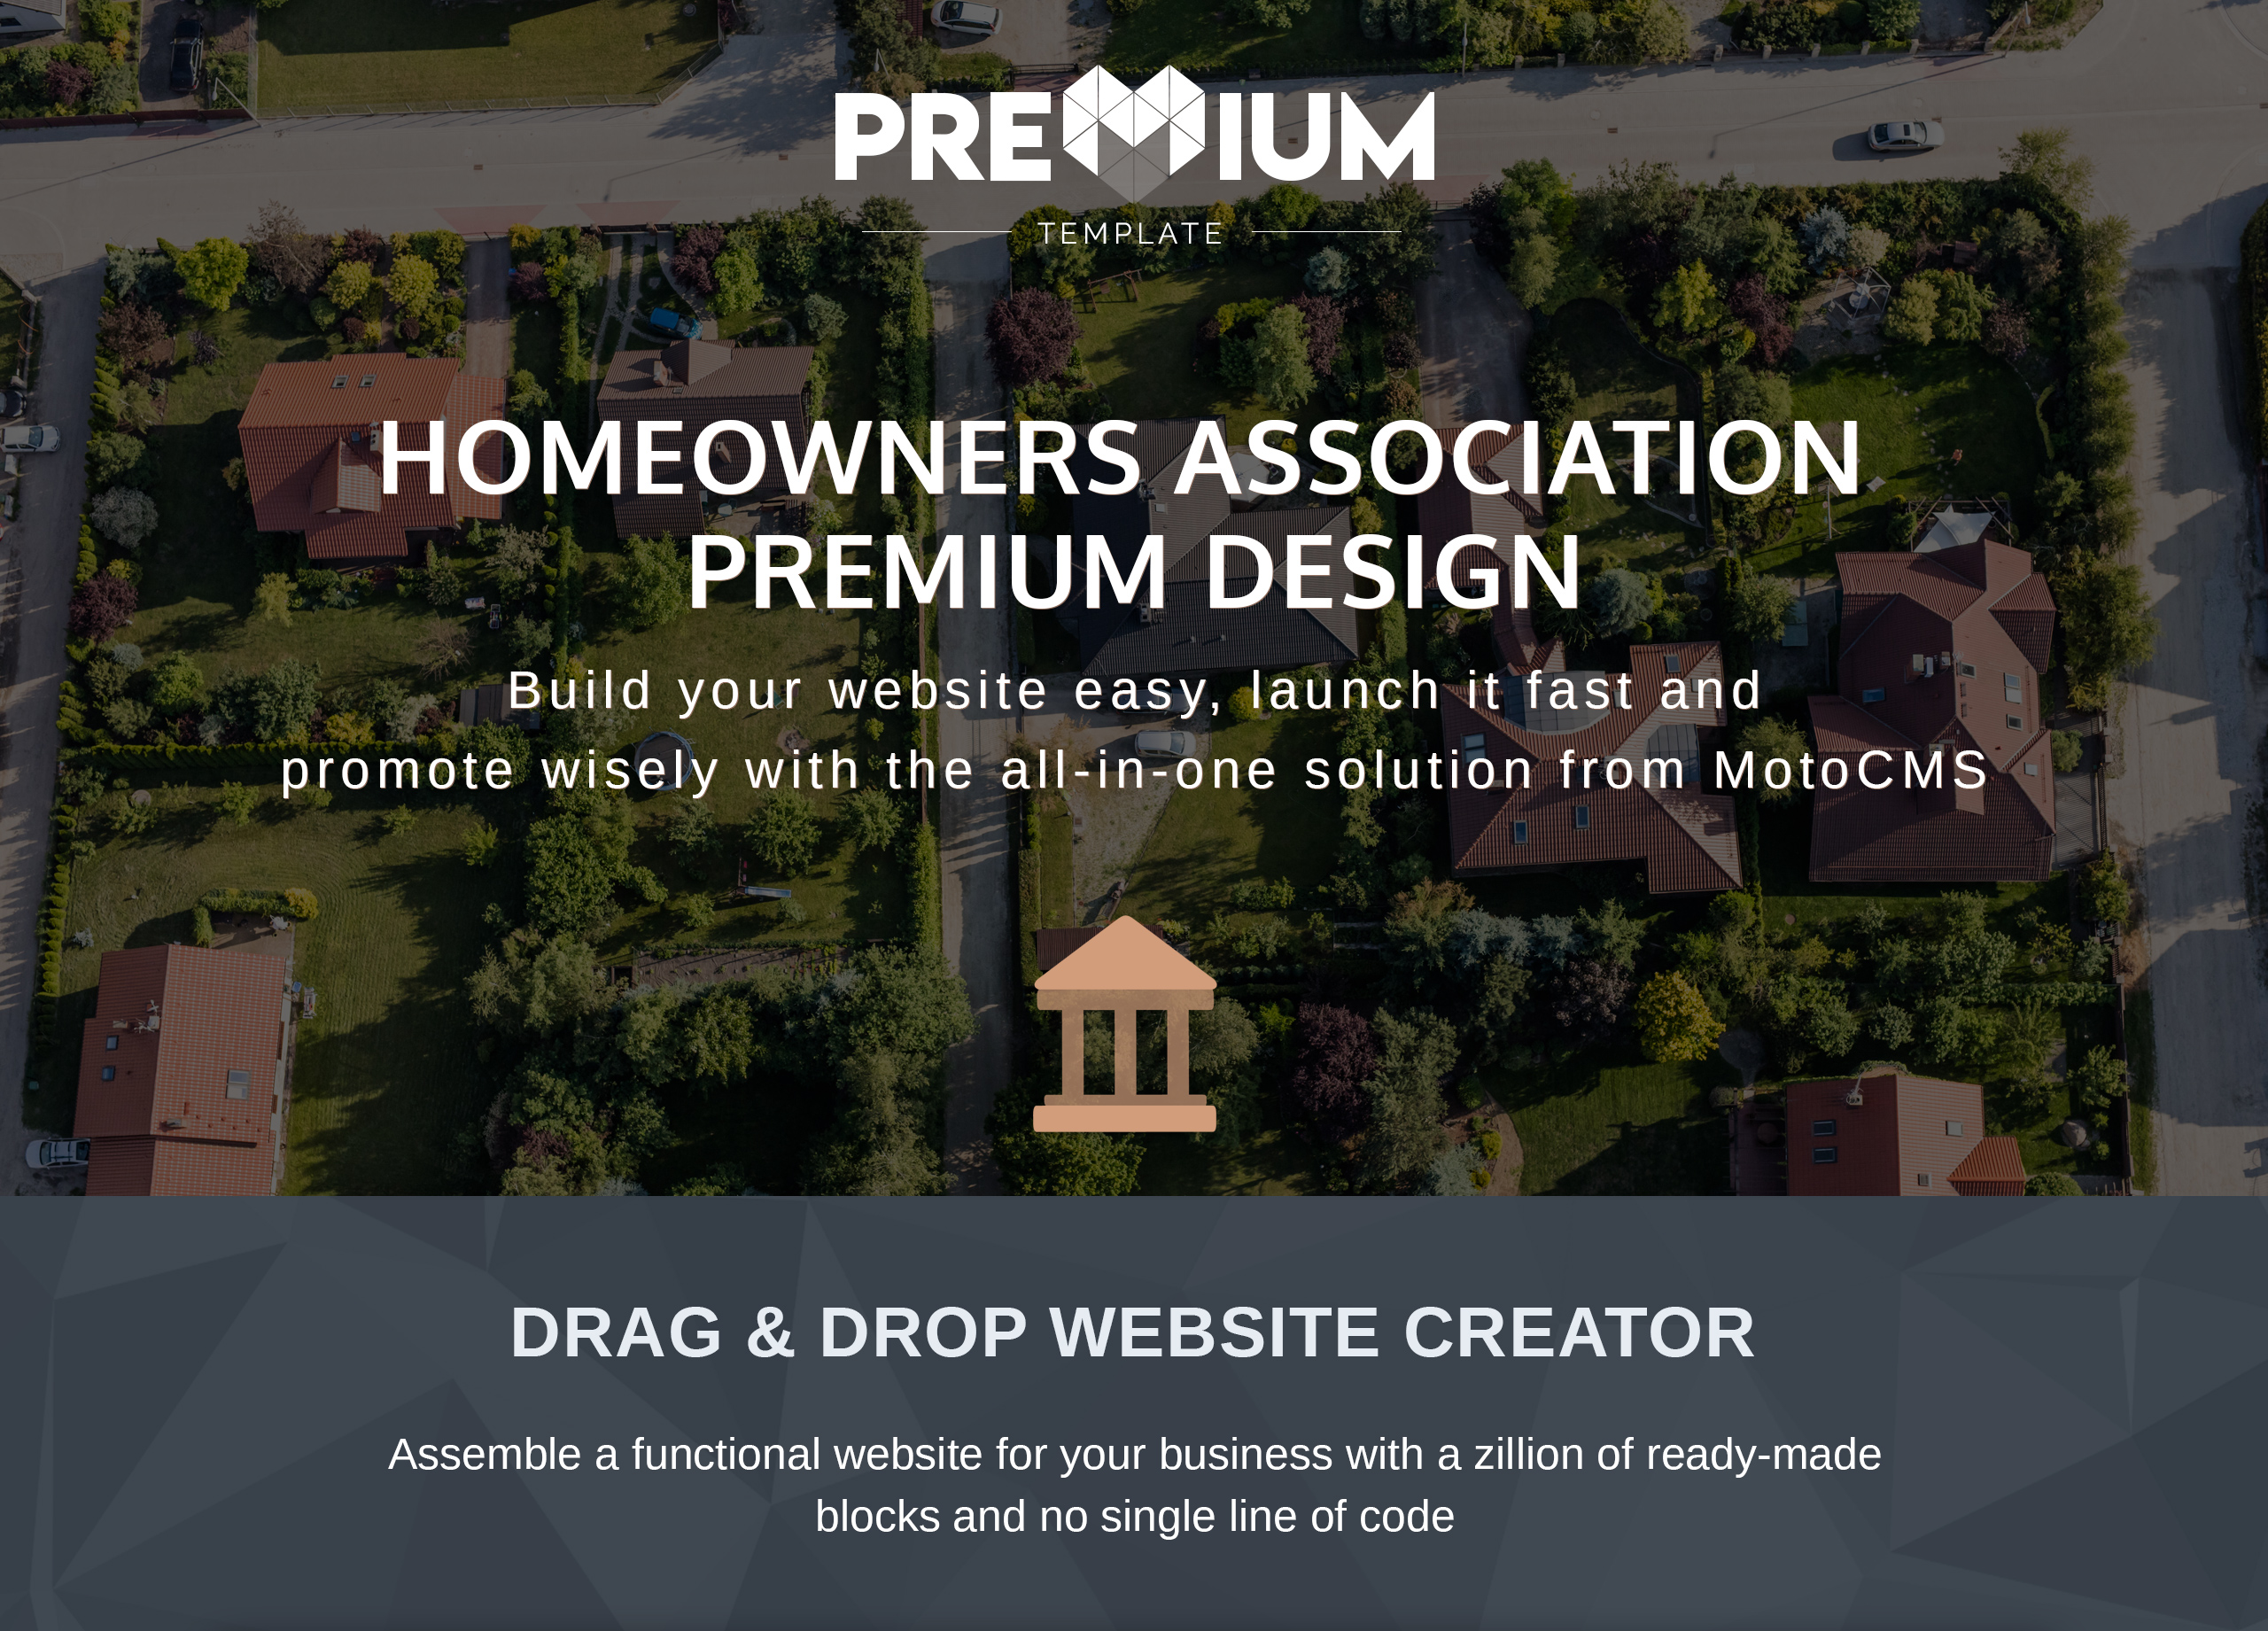 Homeville - Homeowners Association Premium Moto CMS 3 Template